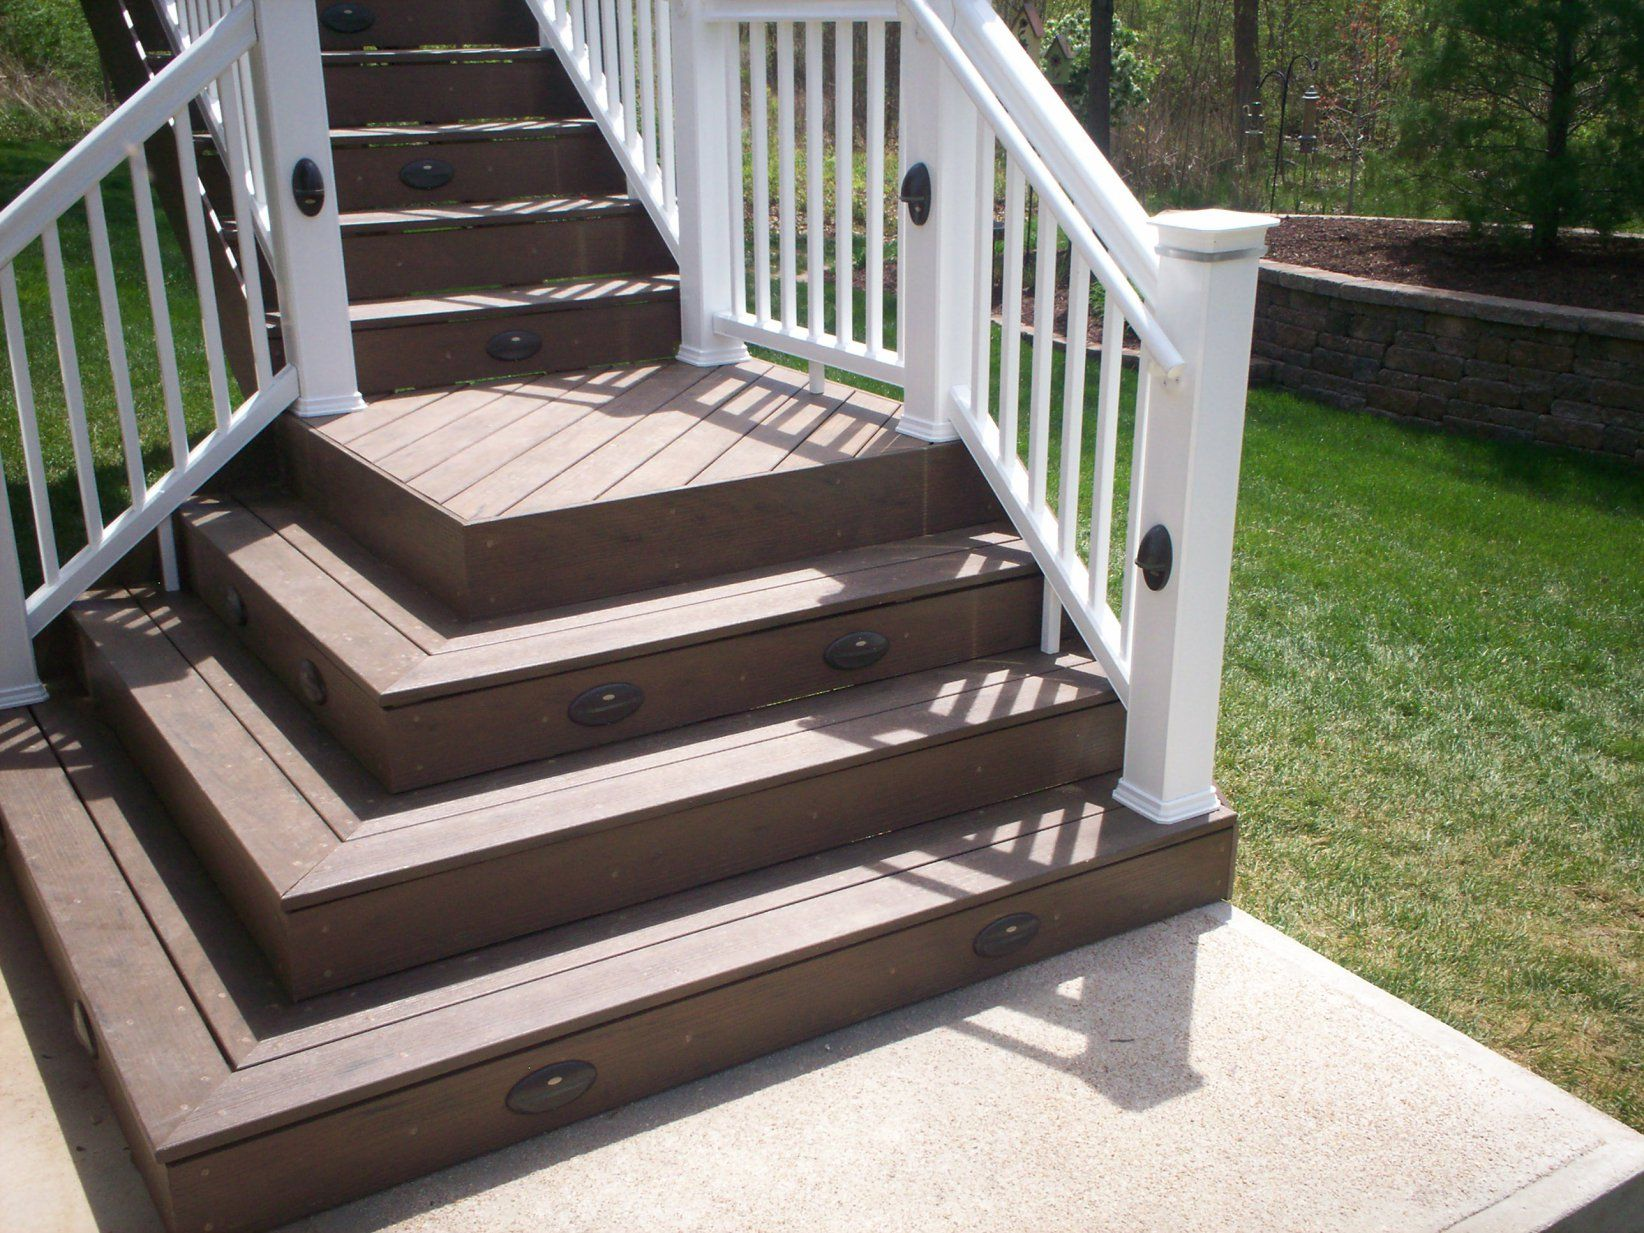 Diy how to build wooden stairs pdf download mission style